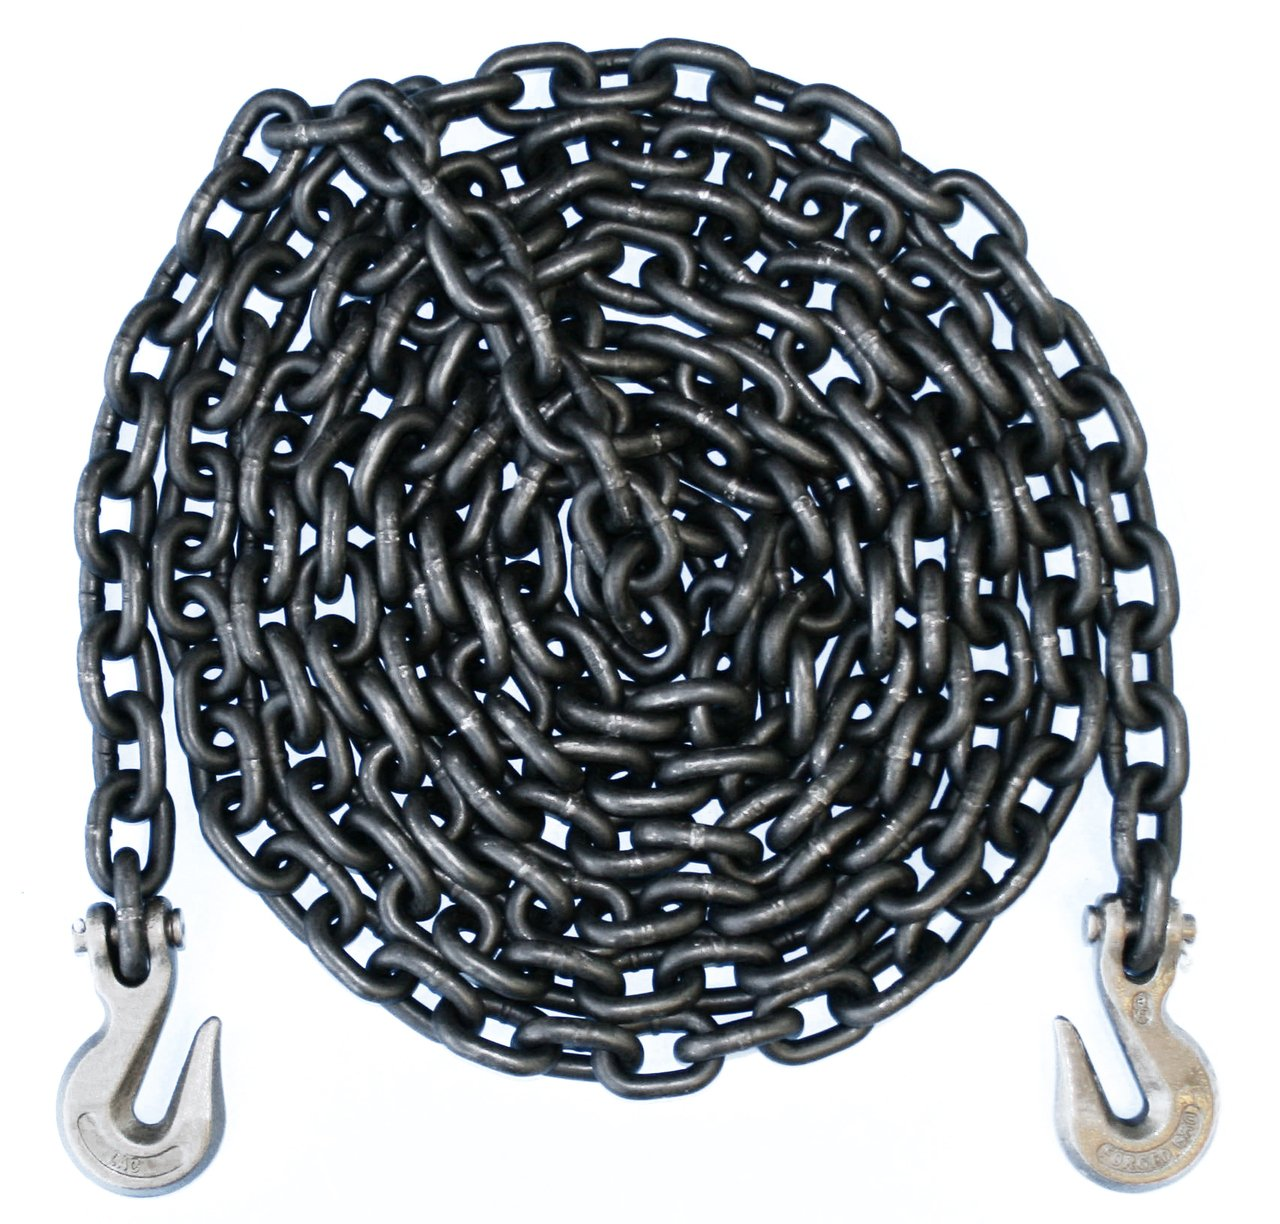 1/2'' - Grade 80 Binder Chain - Grab Hooks - 10' Length